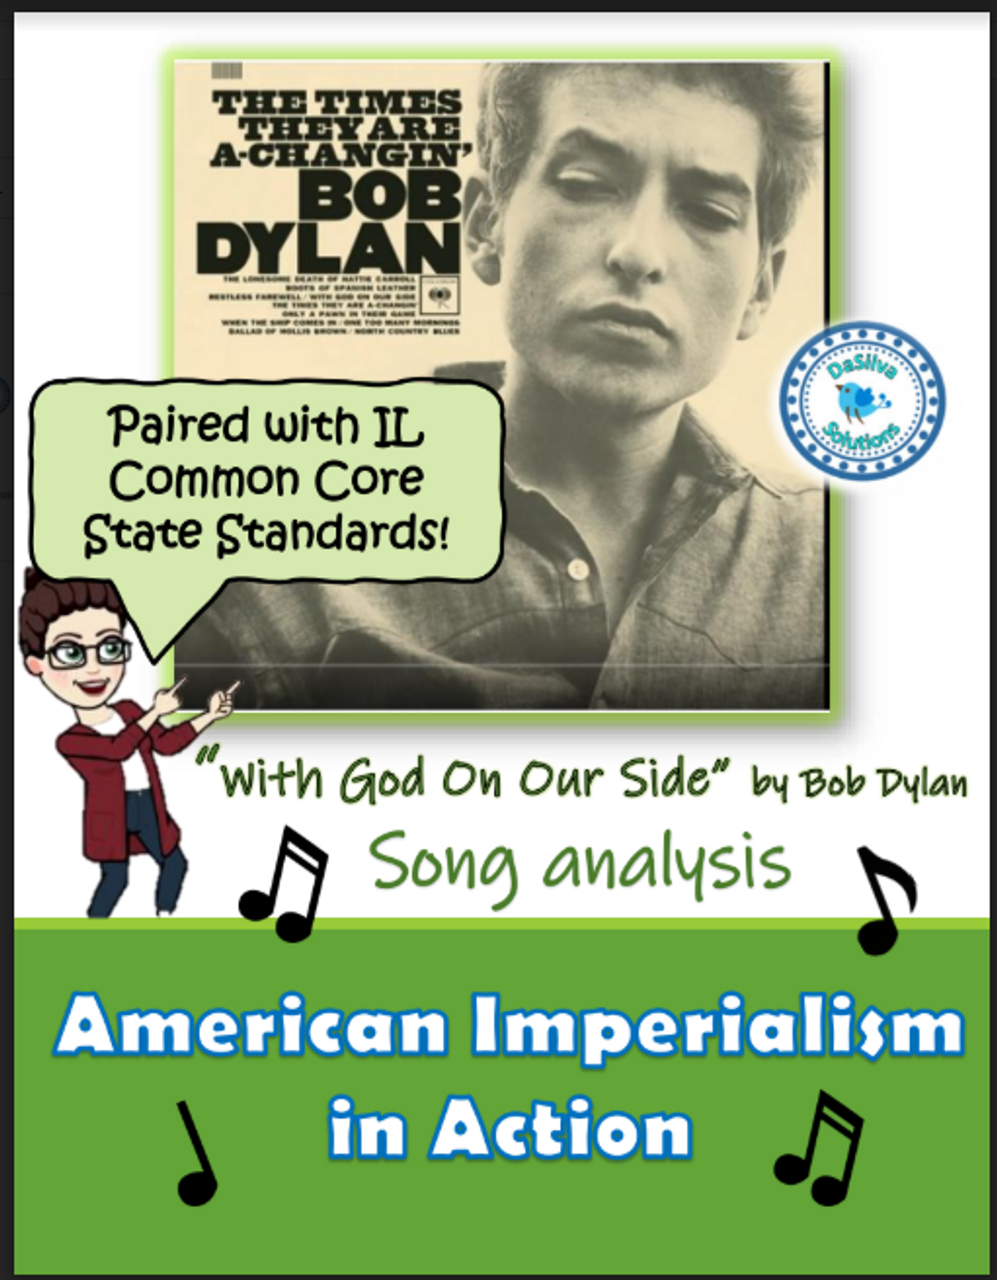 """American Imperialism - """"With God on Our Side"""" Bob Dylan Song Analysis Activity"""